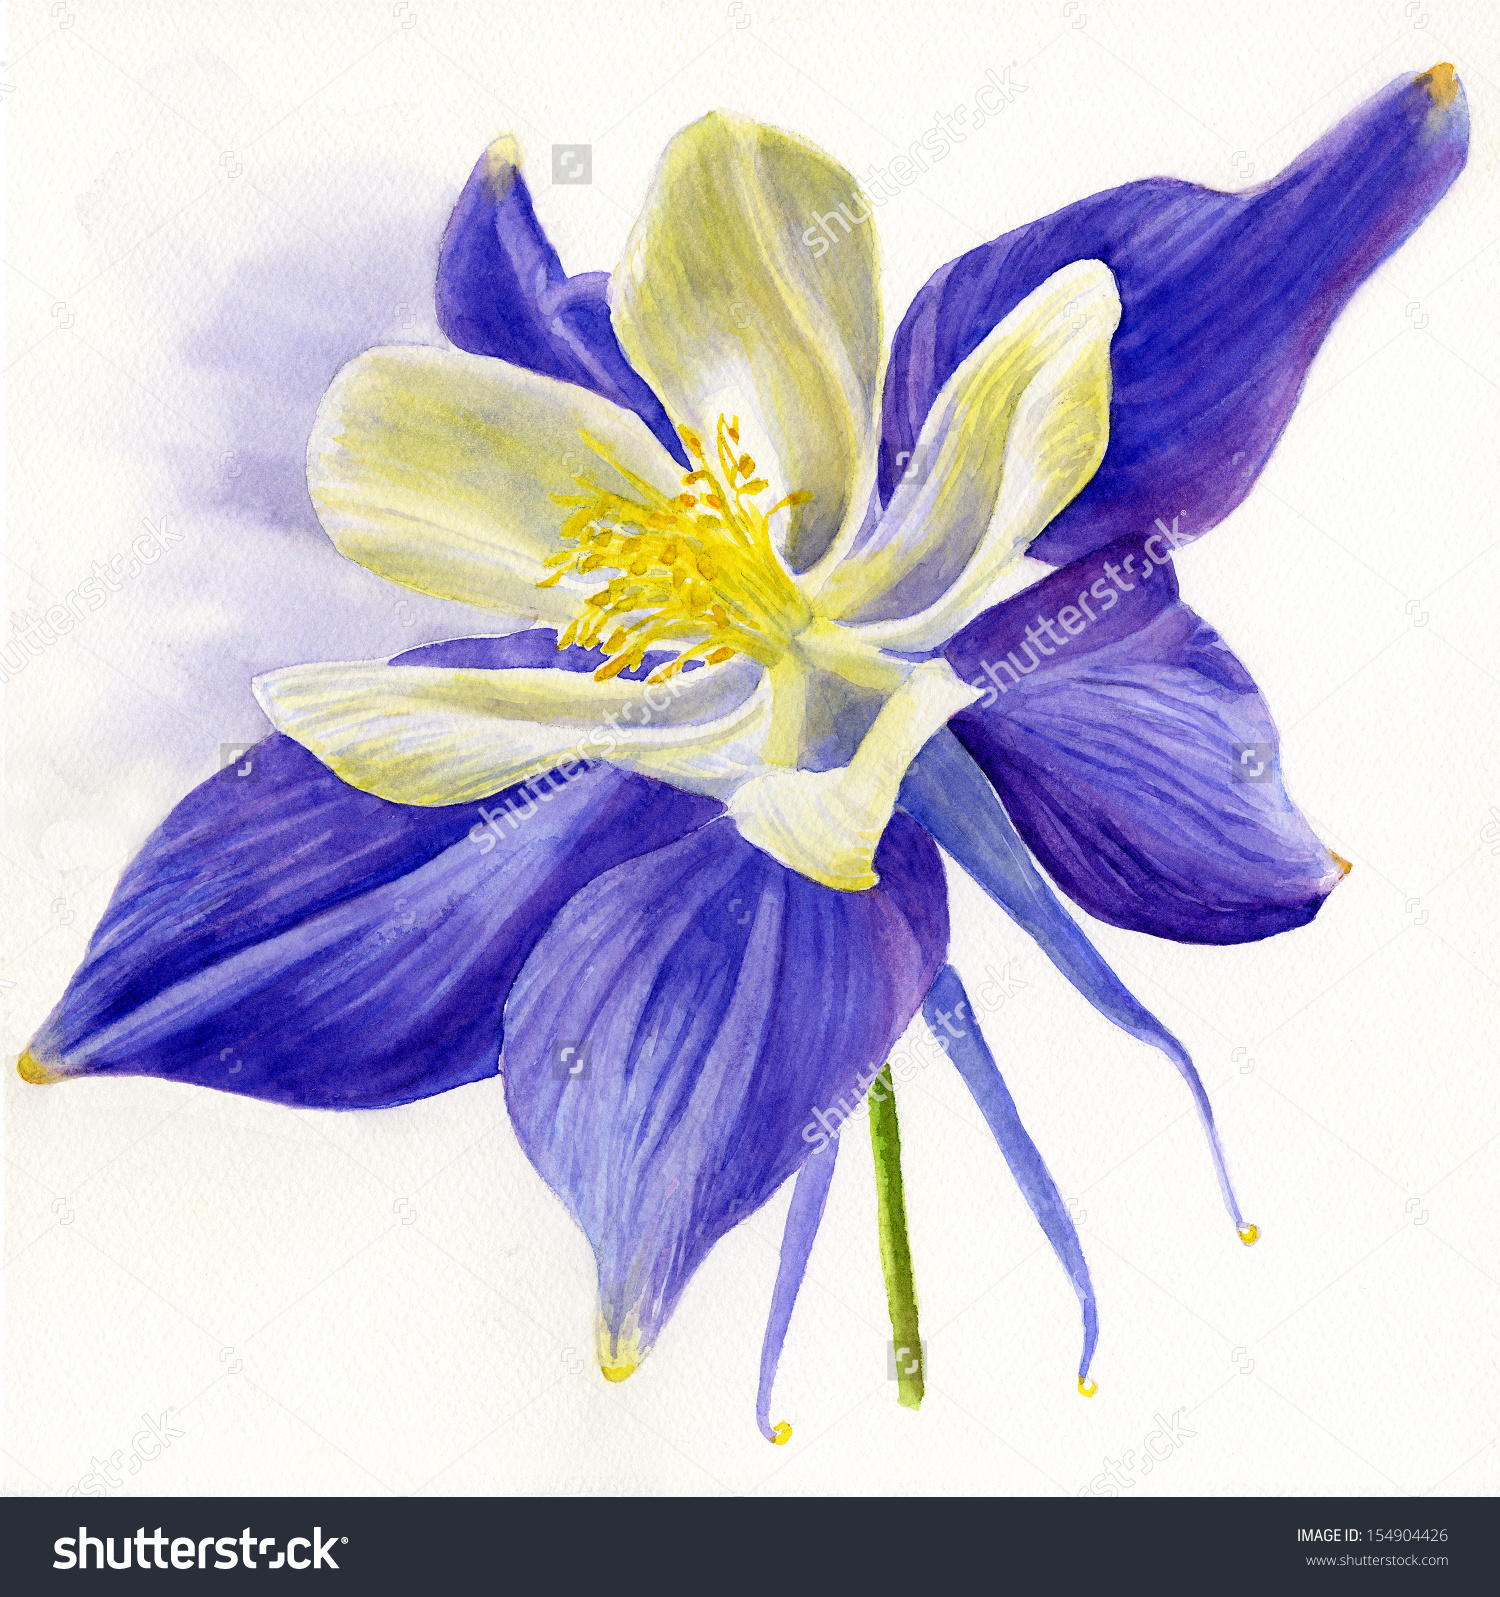 Columbine clipart #4, Download drawings